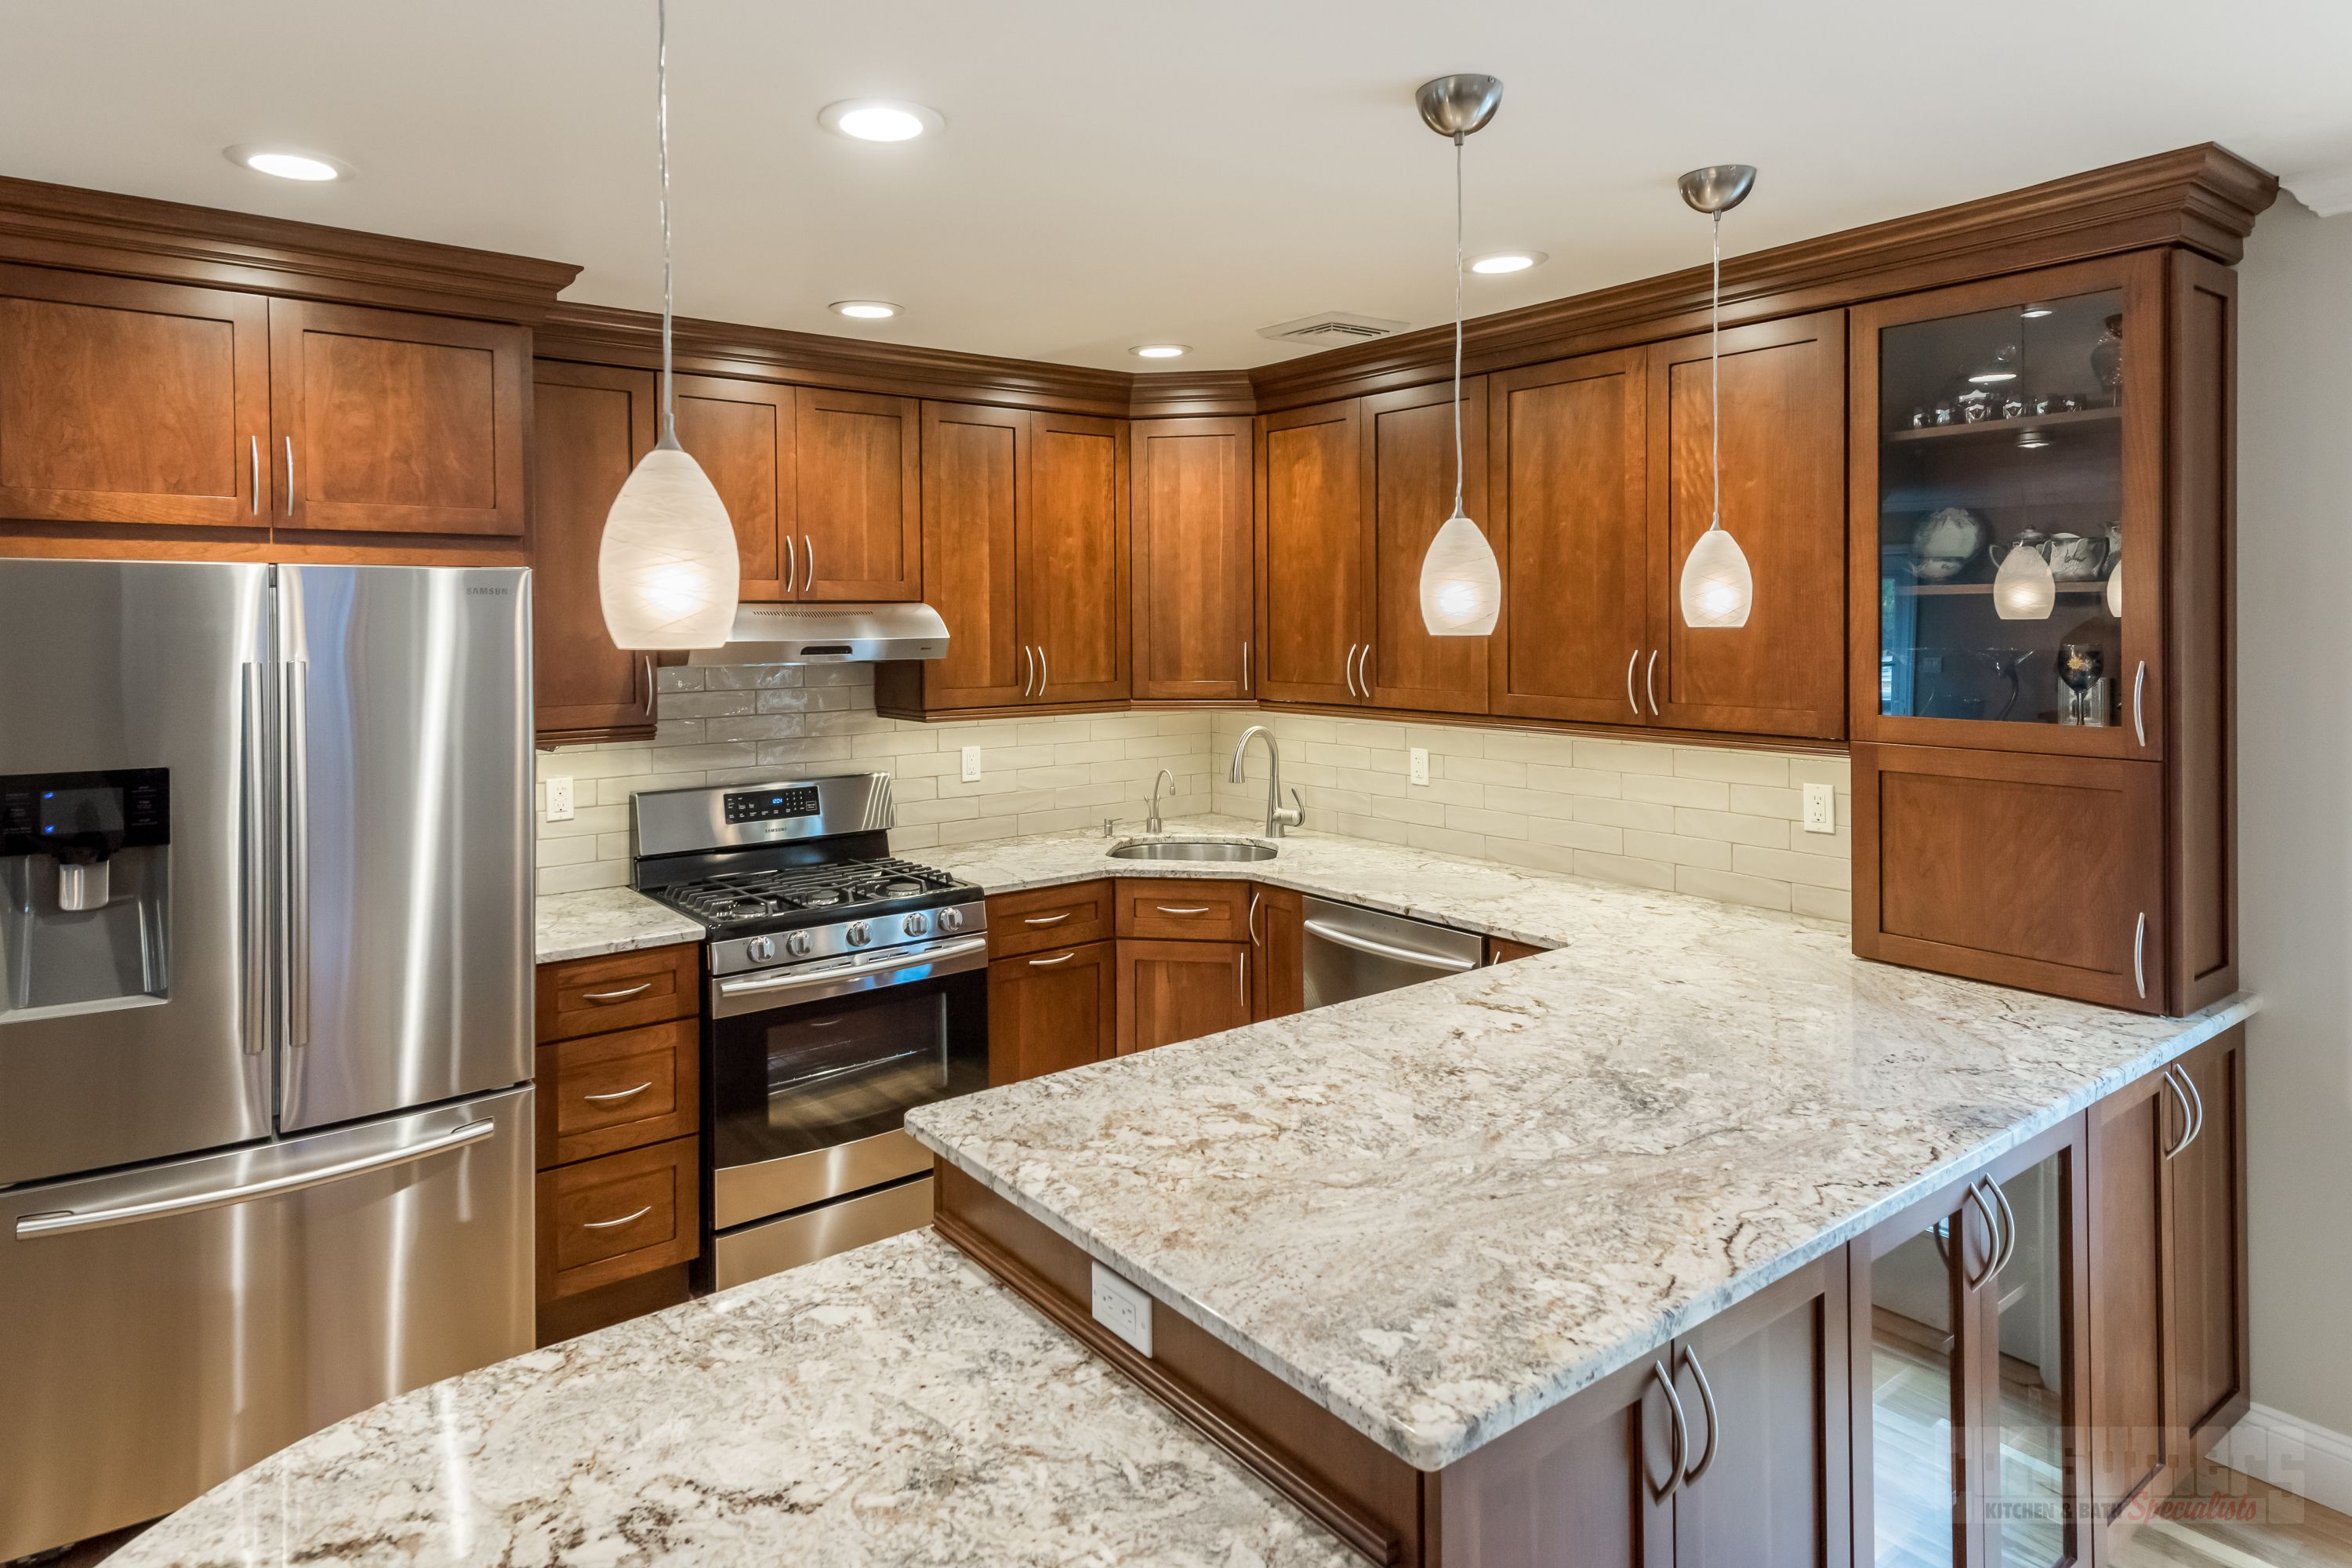 Pin by Consumers Kitchens & Baths on Commack Allure | Pinterest ...